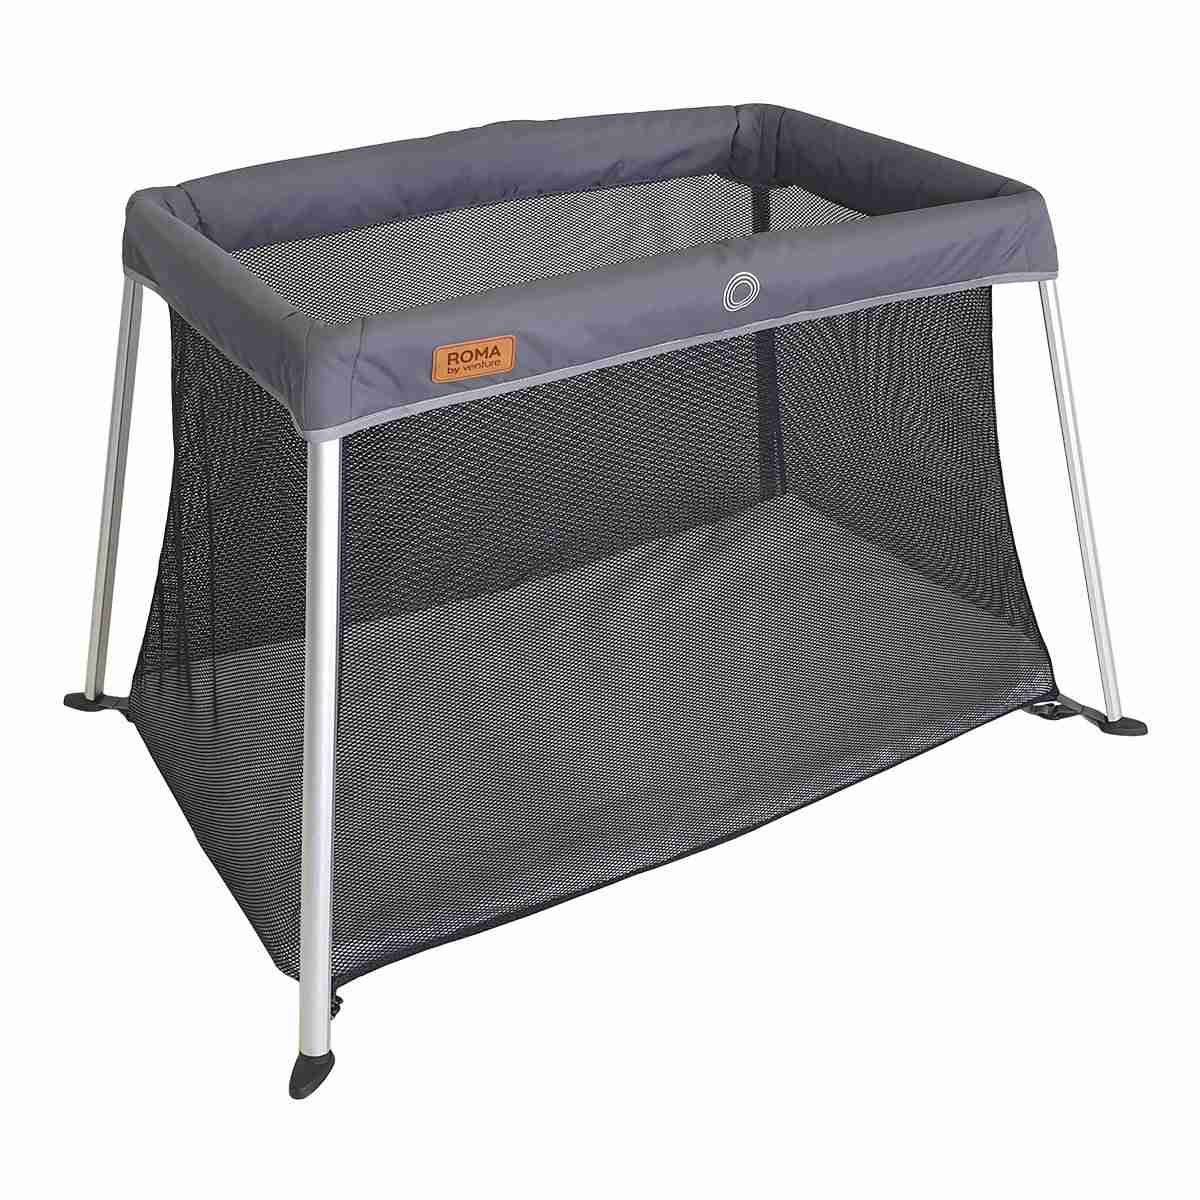 Travel cot with mattress included